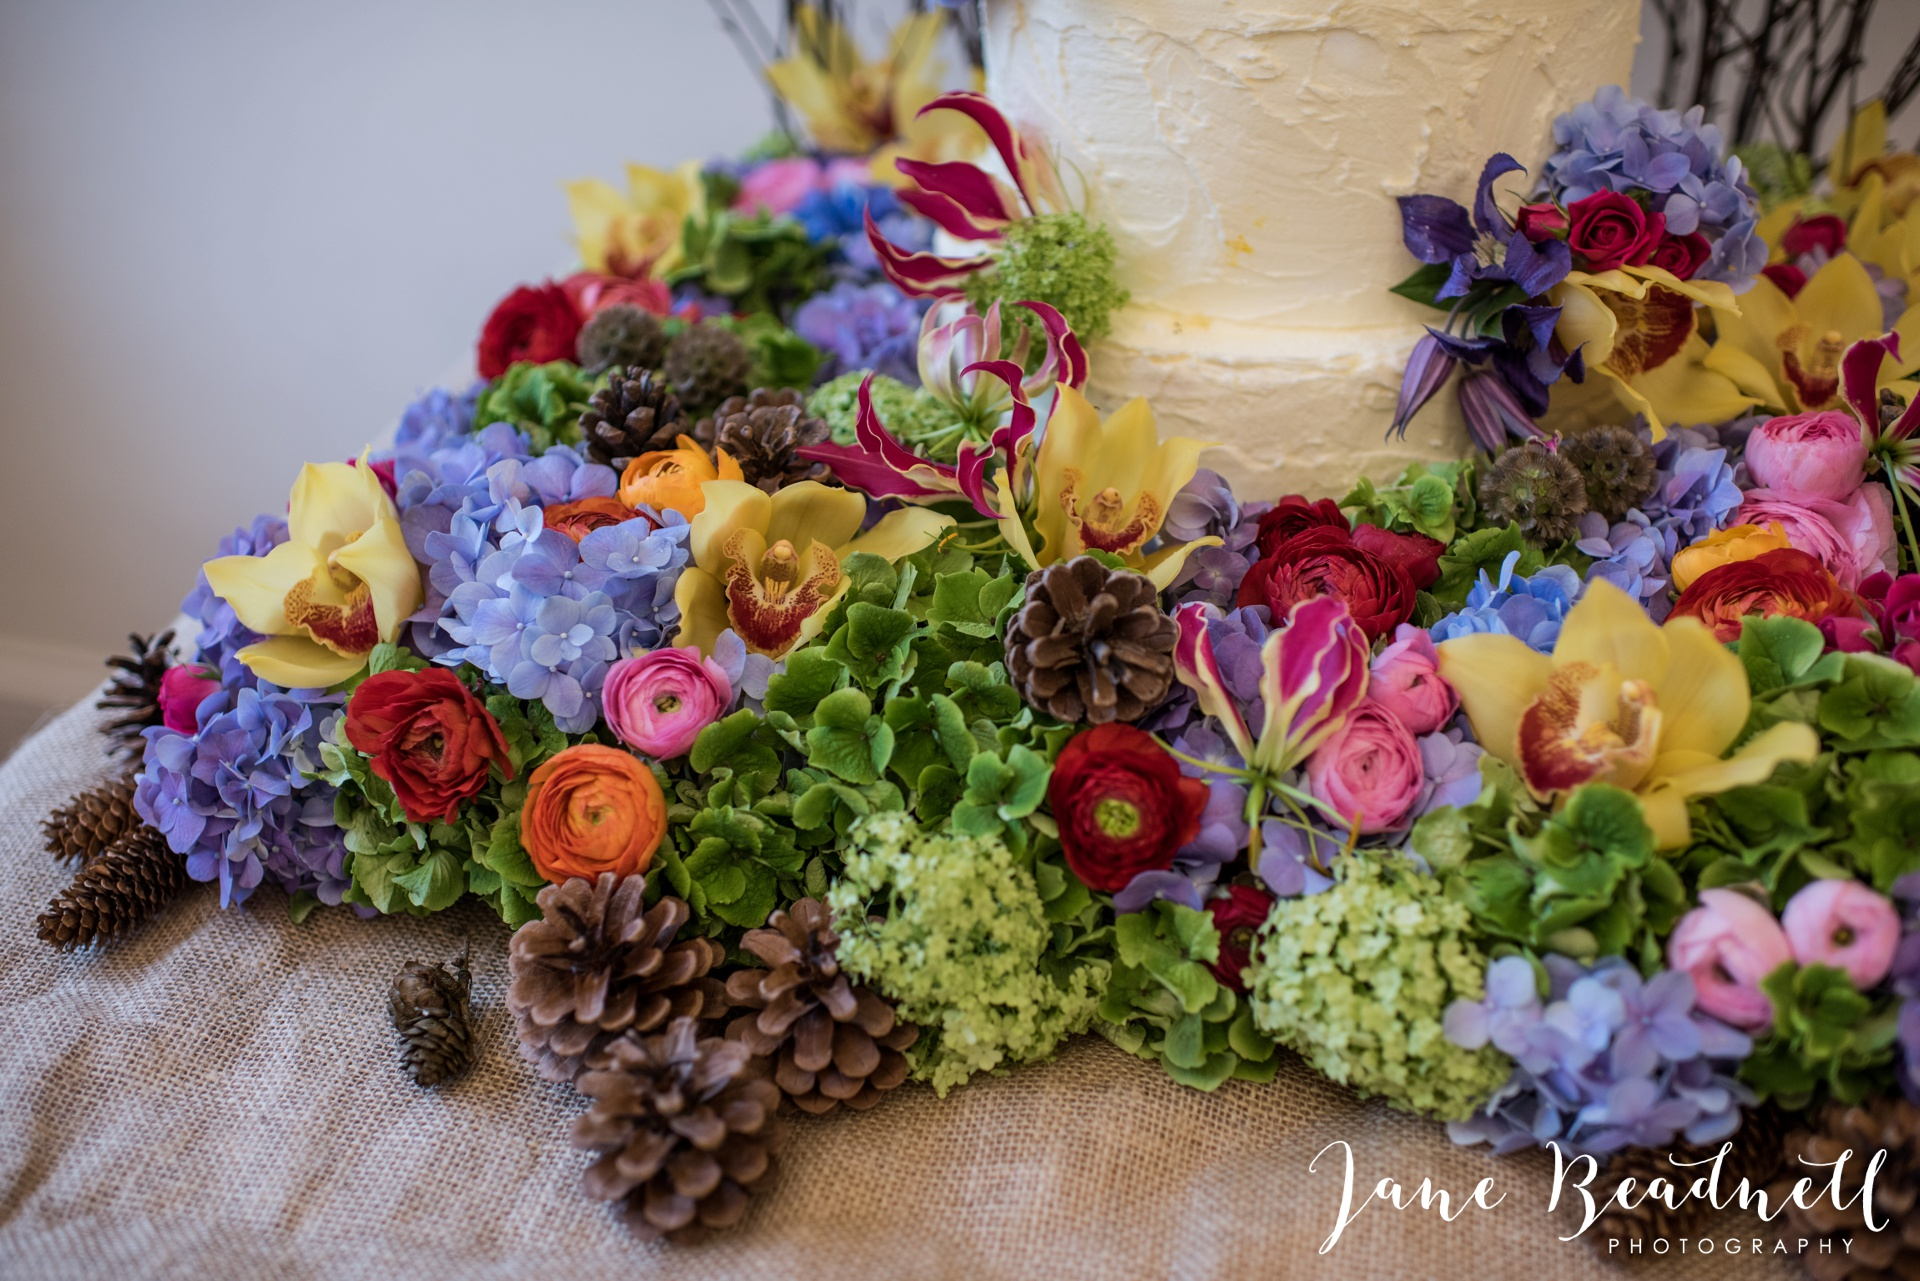 Leafy couture wedding flowers wedding photography by Jane Beadnell photography_0006